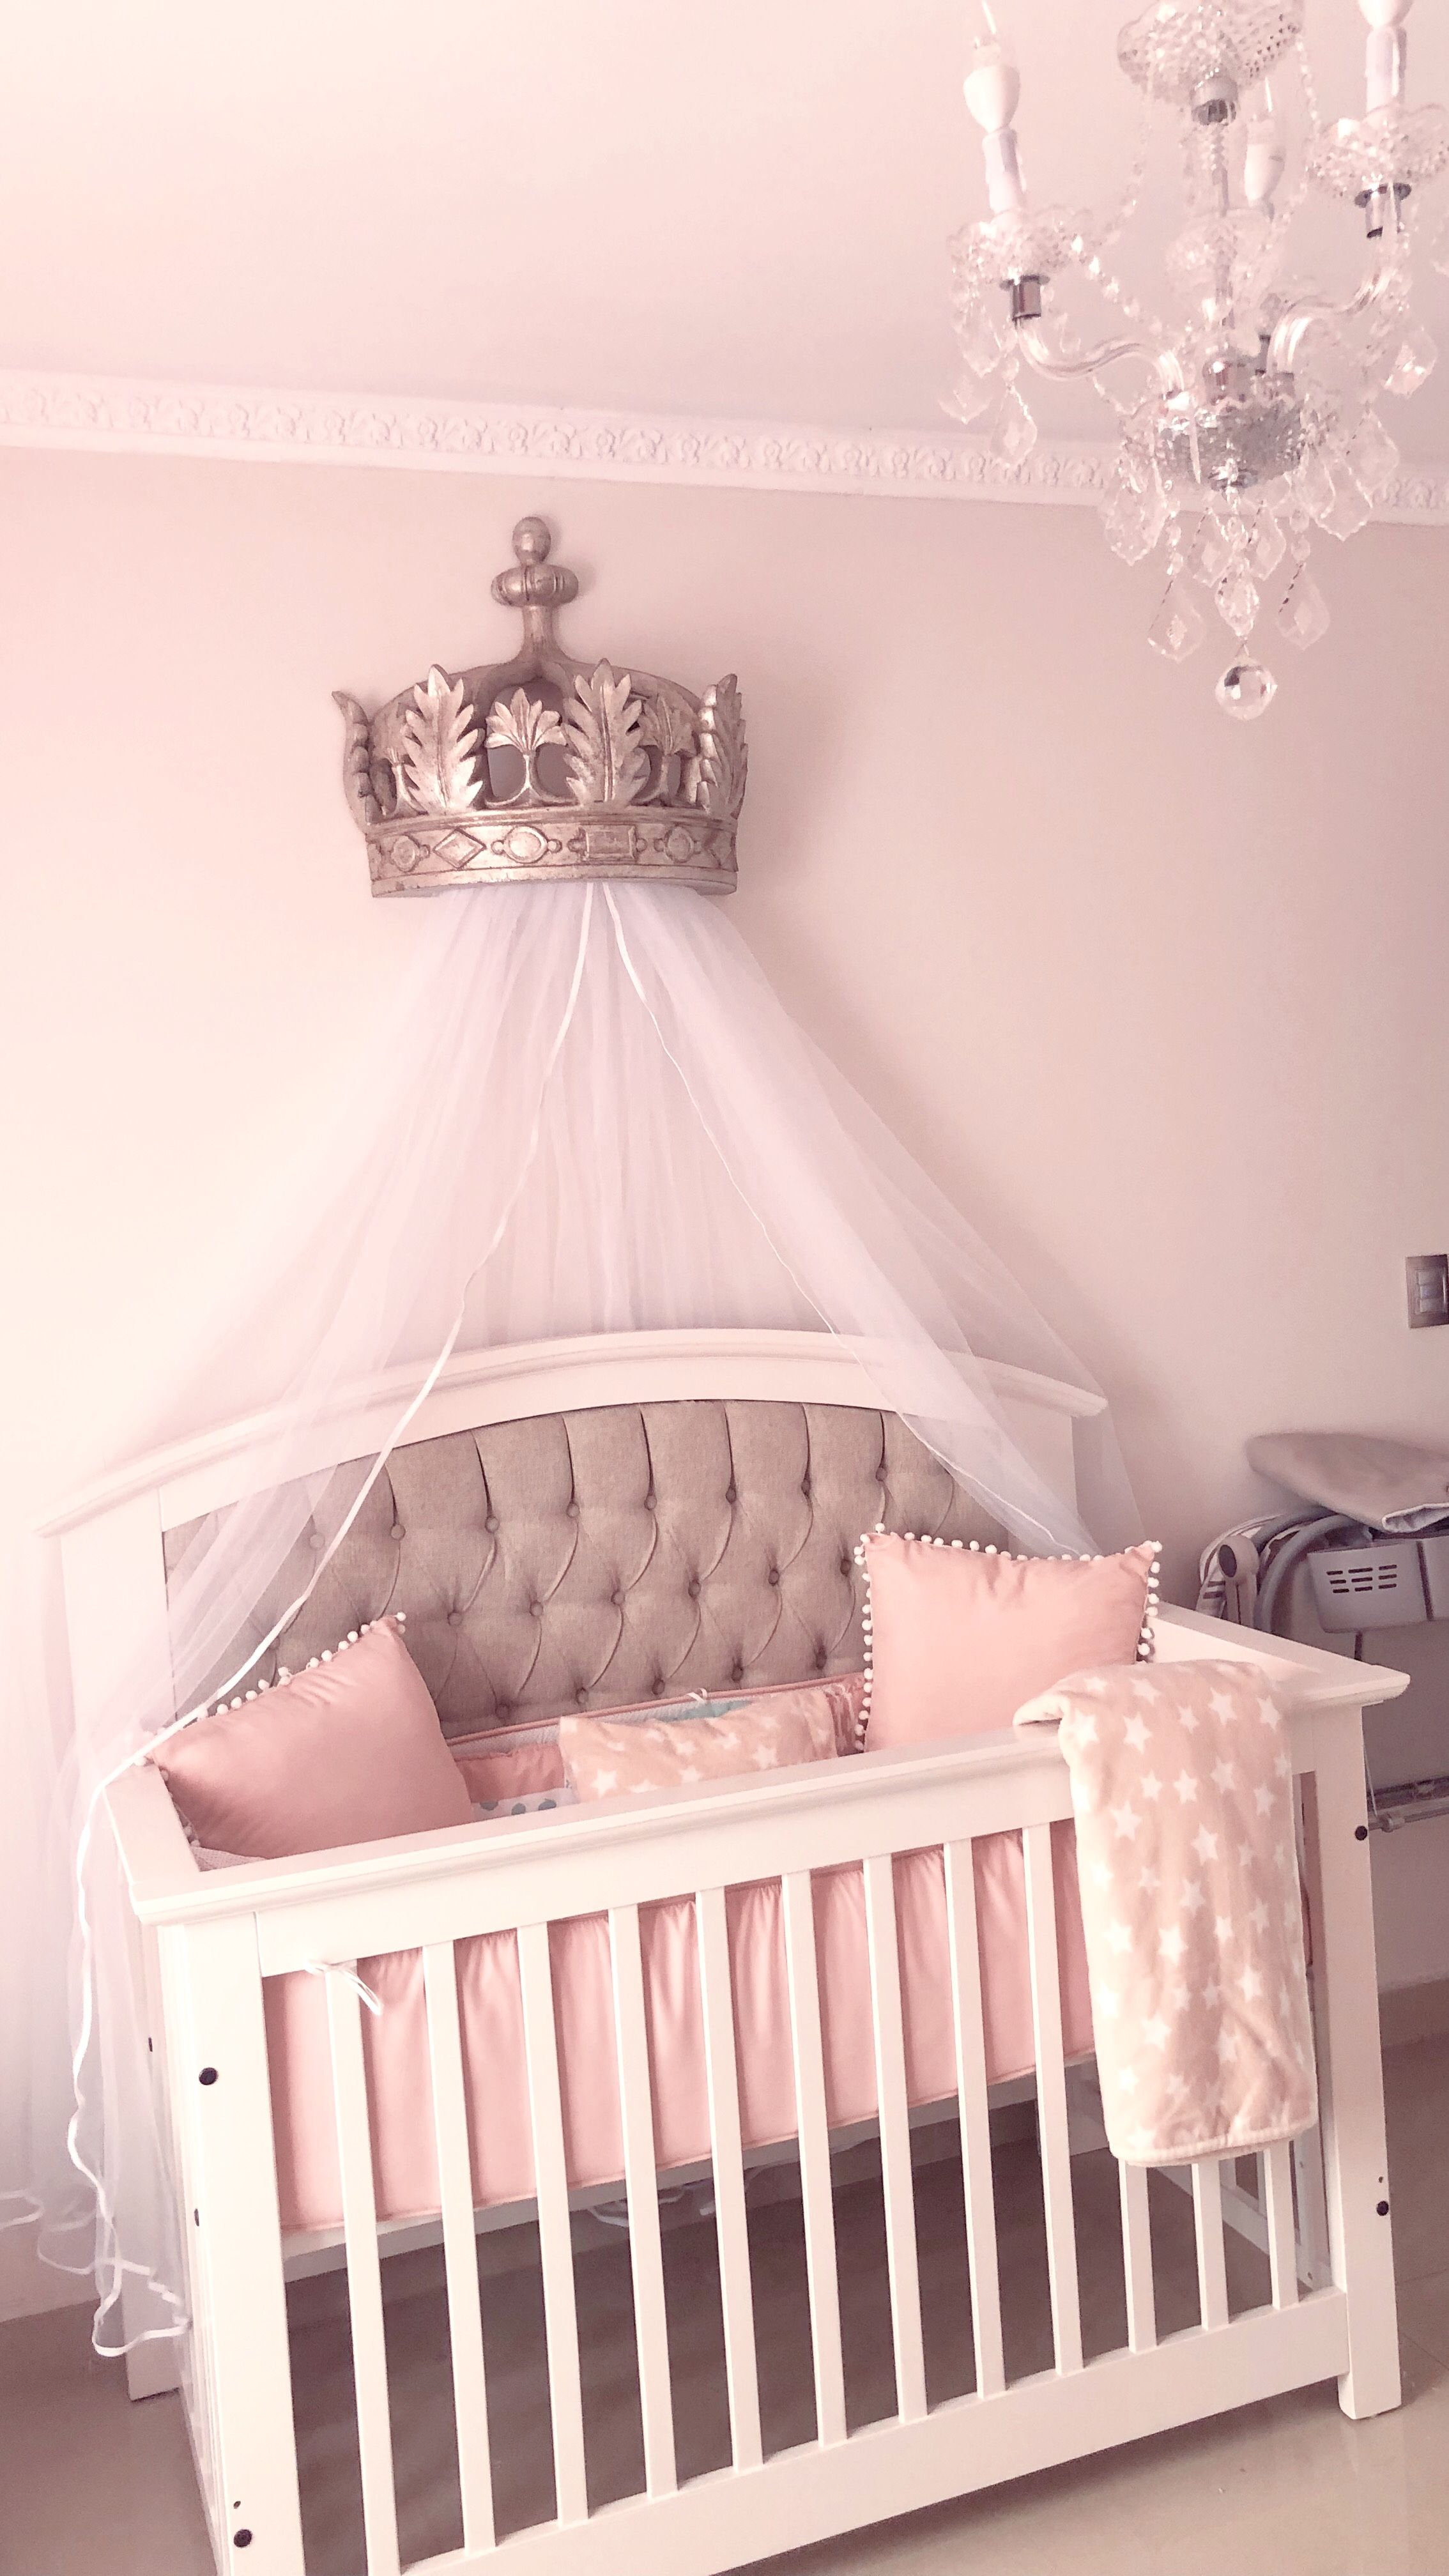 Crown canopy from restoration hardware, princess nursery